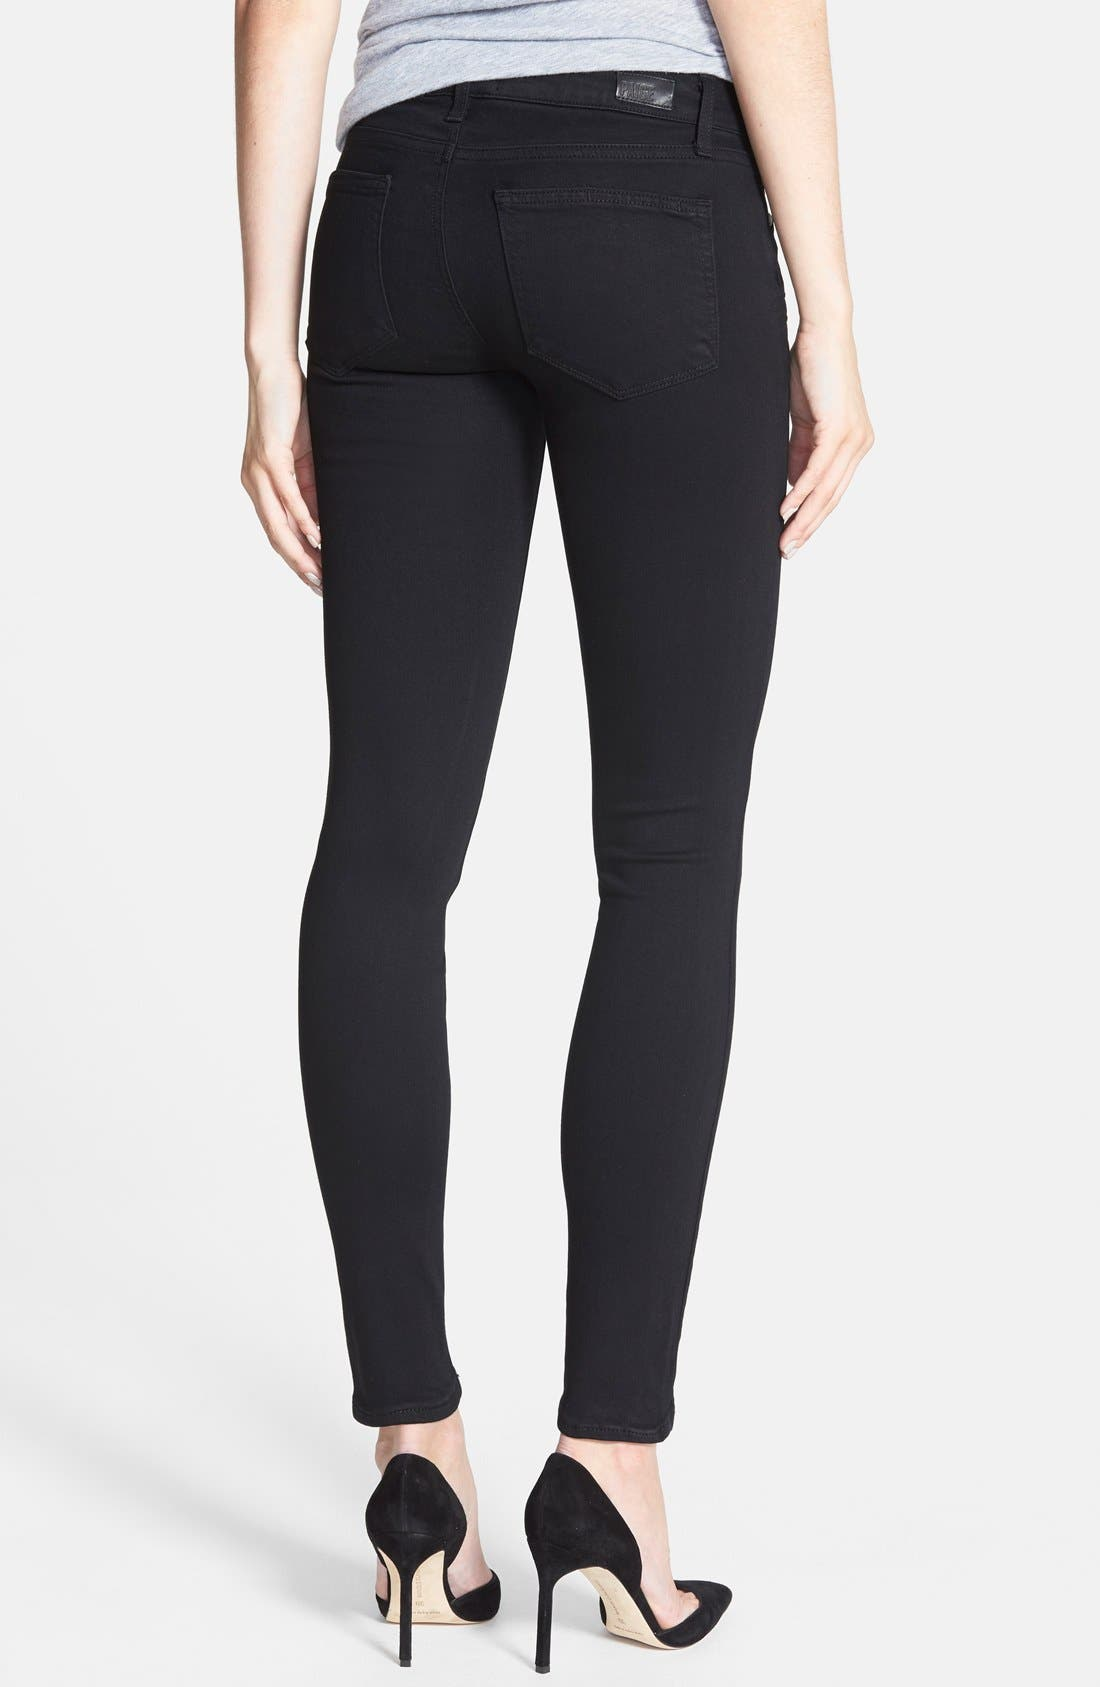 Transcend - Edgemont Ultra Skinny Jeans,                             Alternate thumbnail 2, color,                             Black Shadow